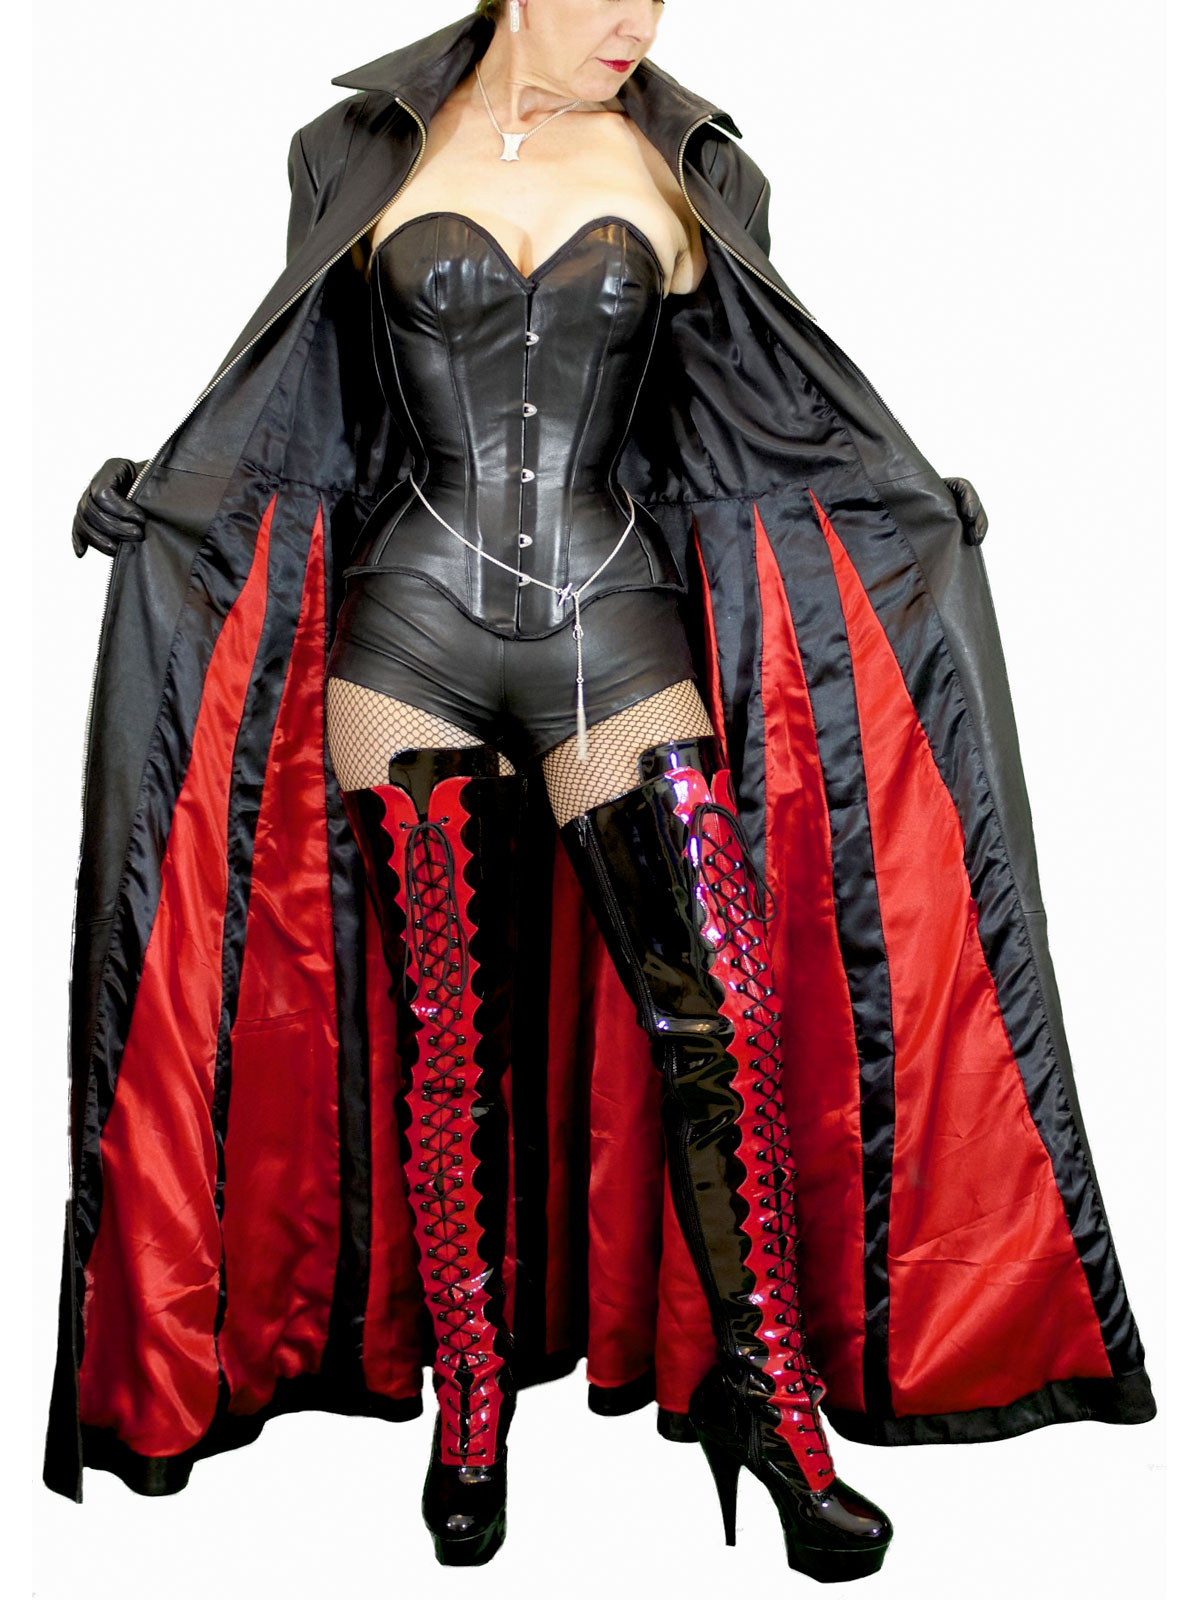 Long Gothic Leather Coat, red & black lining